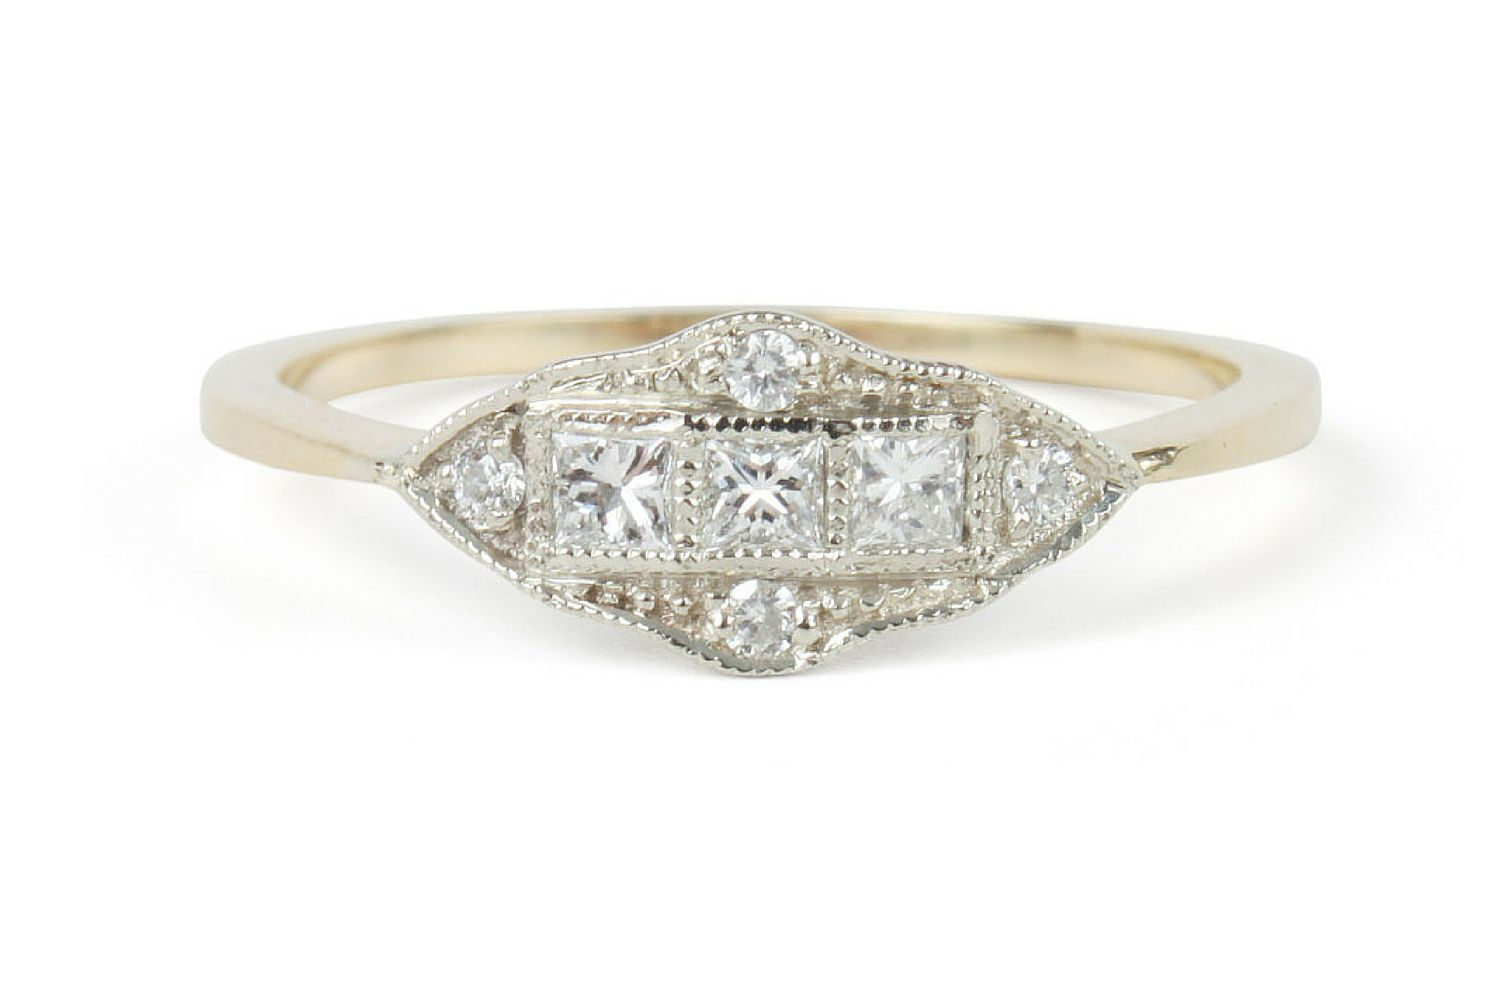 engagement arthur diamond detailed cut detail eternity gold kaplan ring rings milgrain products baguette channel white